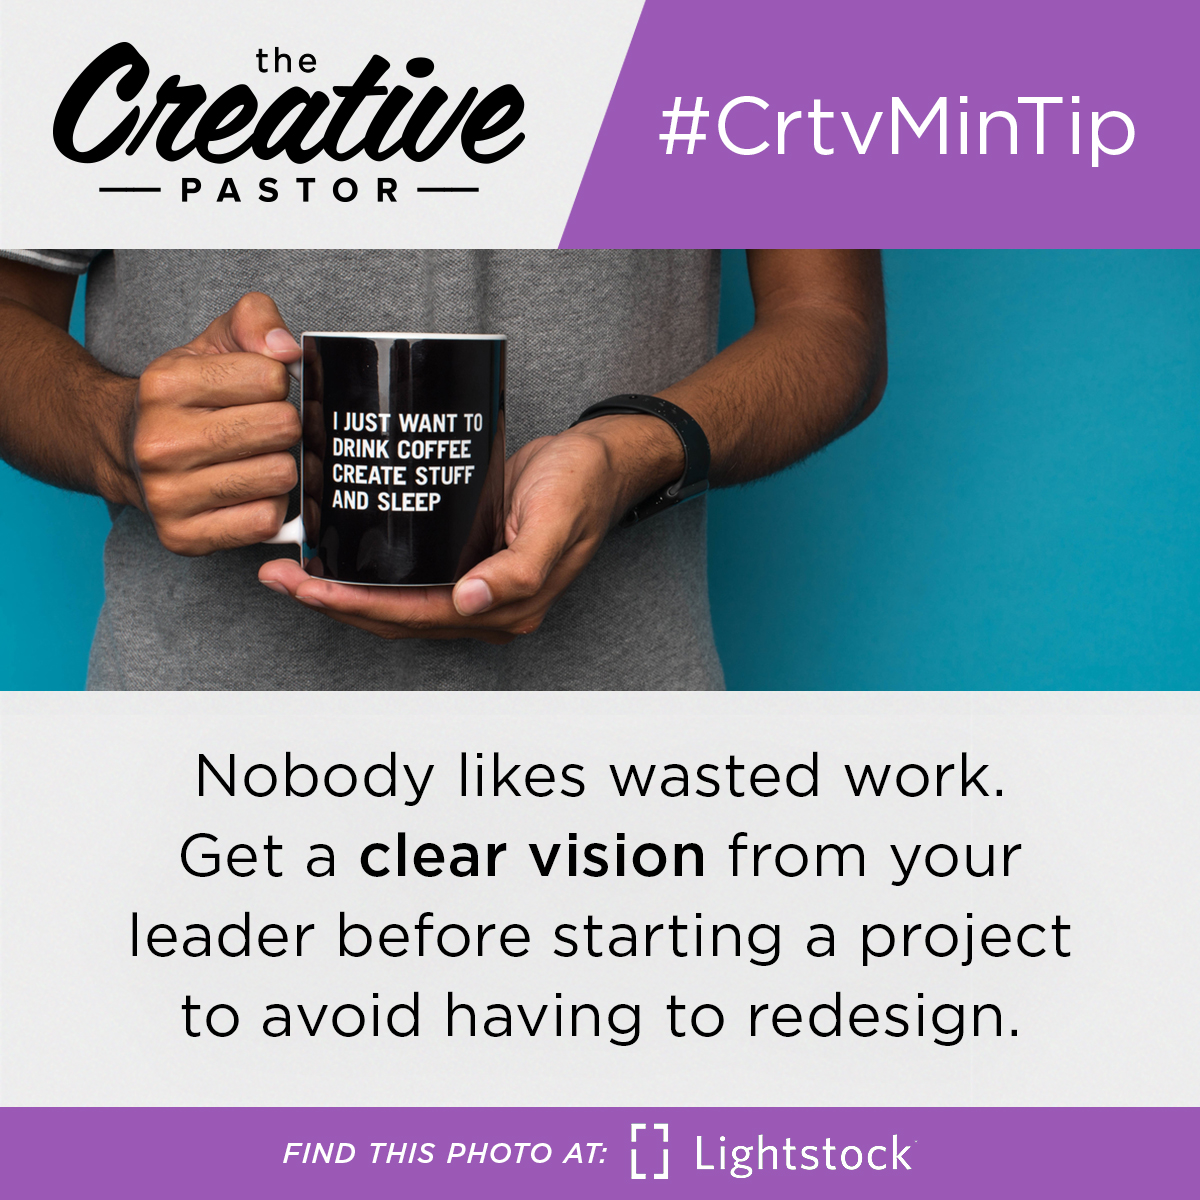 #CrtvMinTip: Nobody likes wasted work. Get a clear vision from your leader before starting a project to avoid having to redesign.